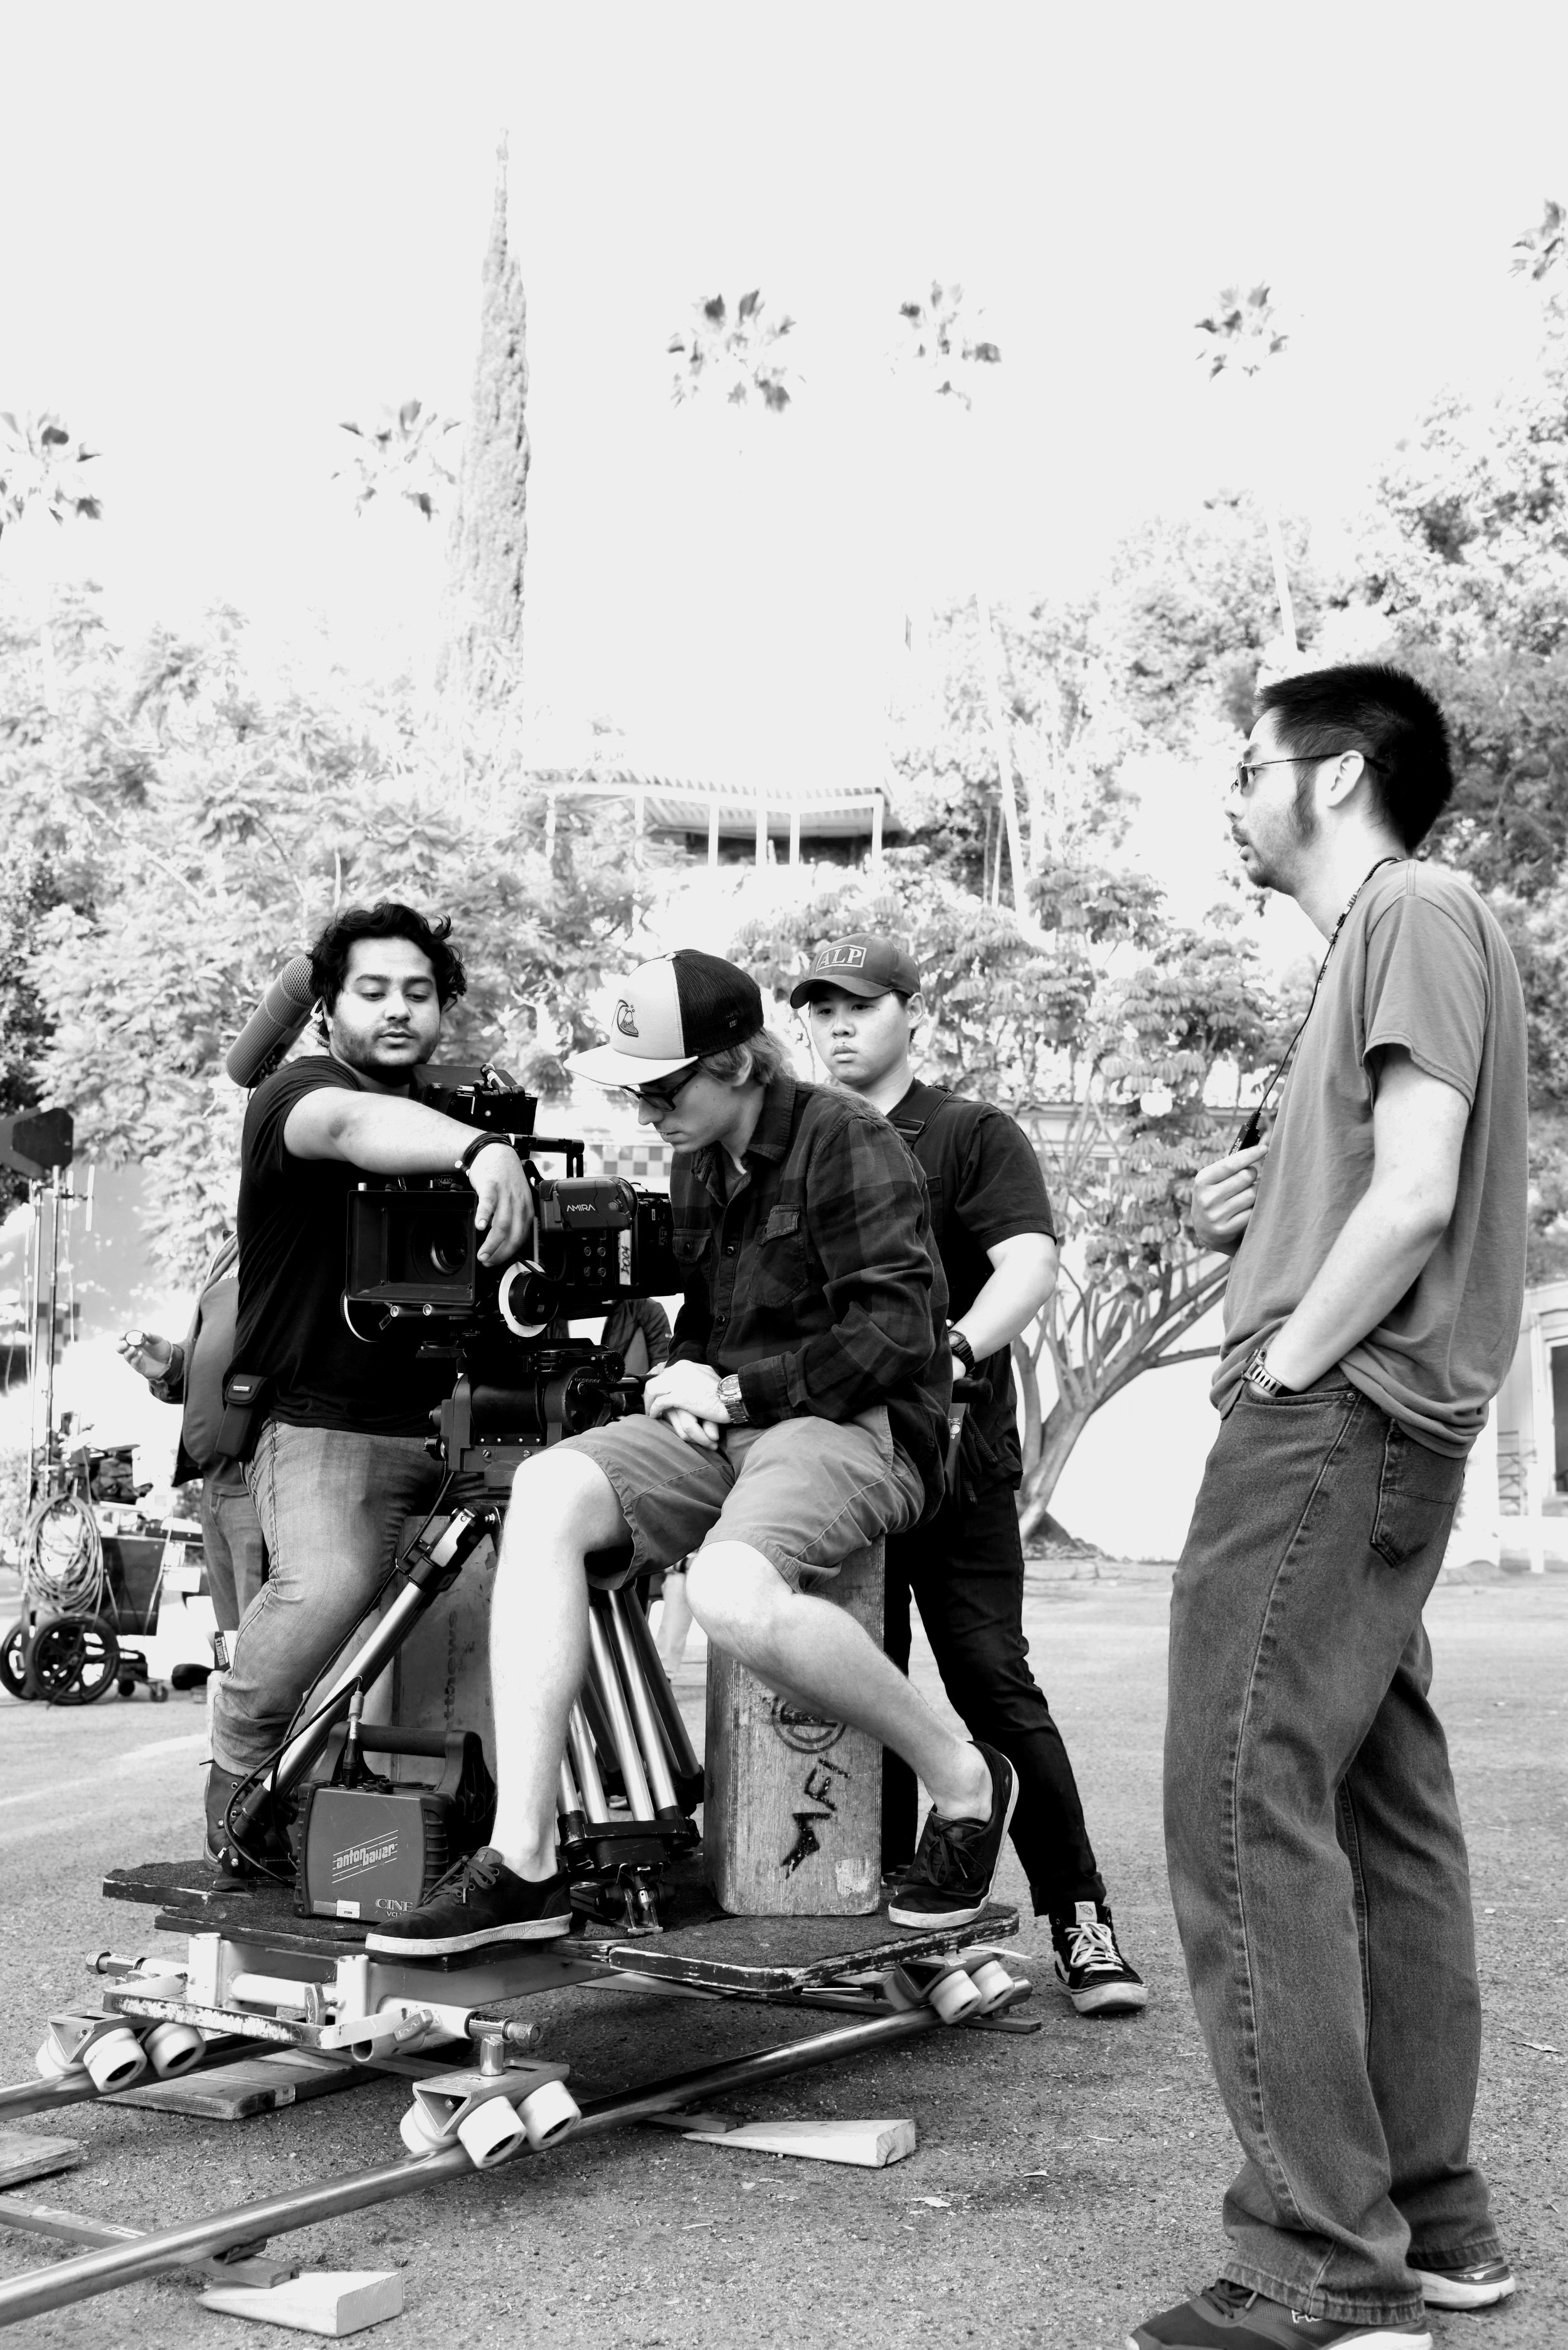 1st AC  Sam Chatterjee  sets focus for a dolly shot with DP  Michal Wronski  and 1st AD  Kevin Huie .